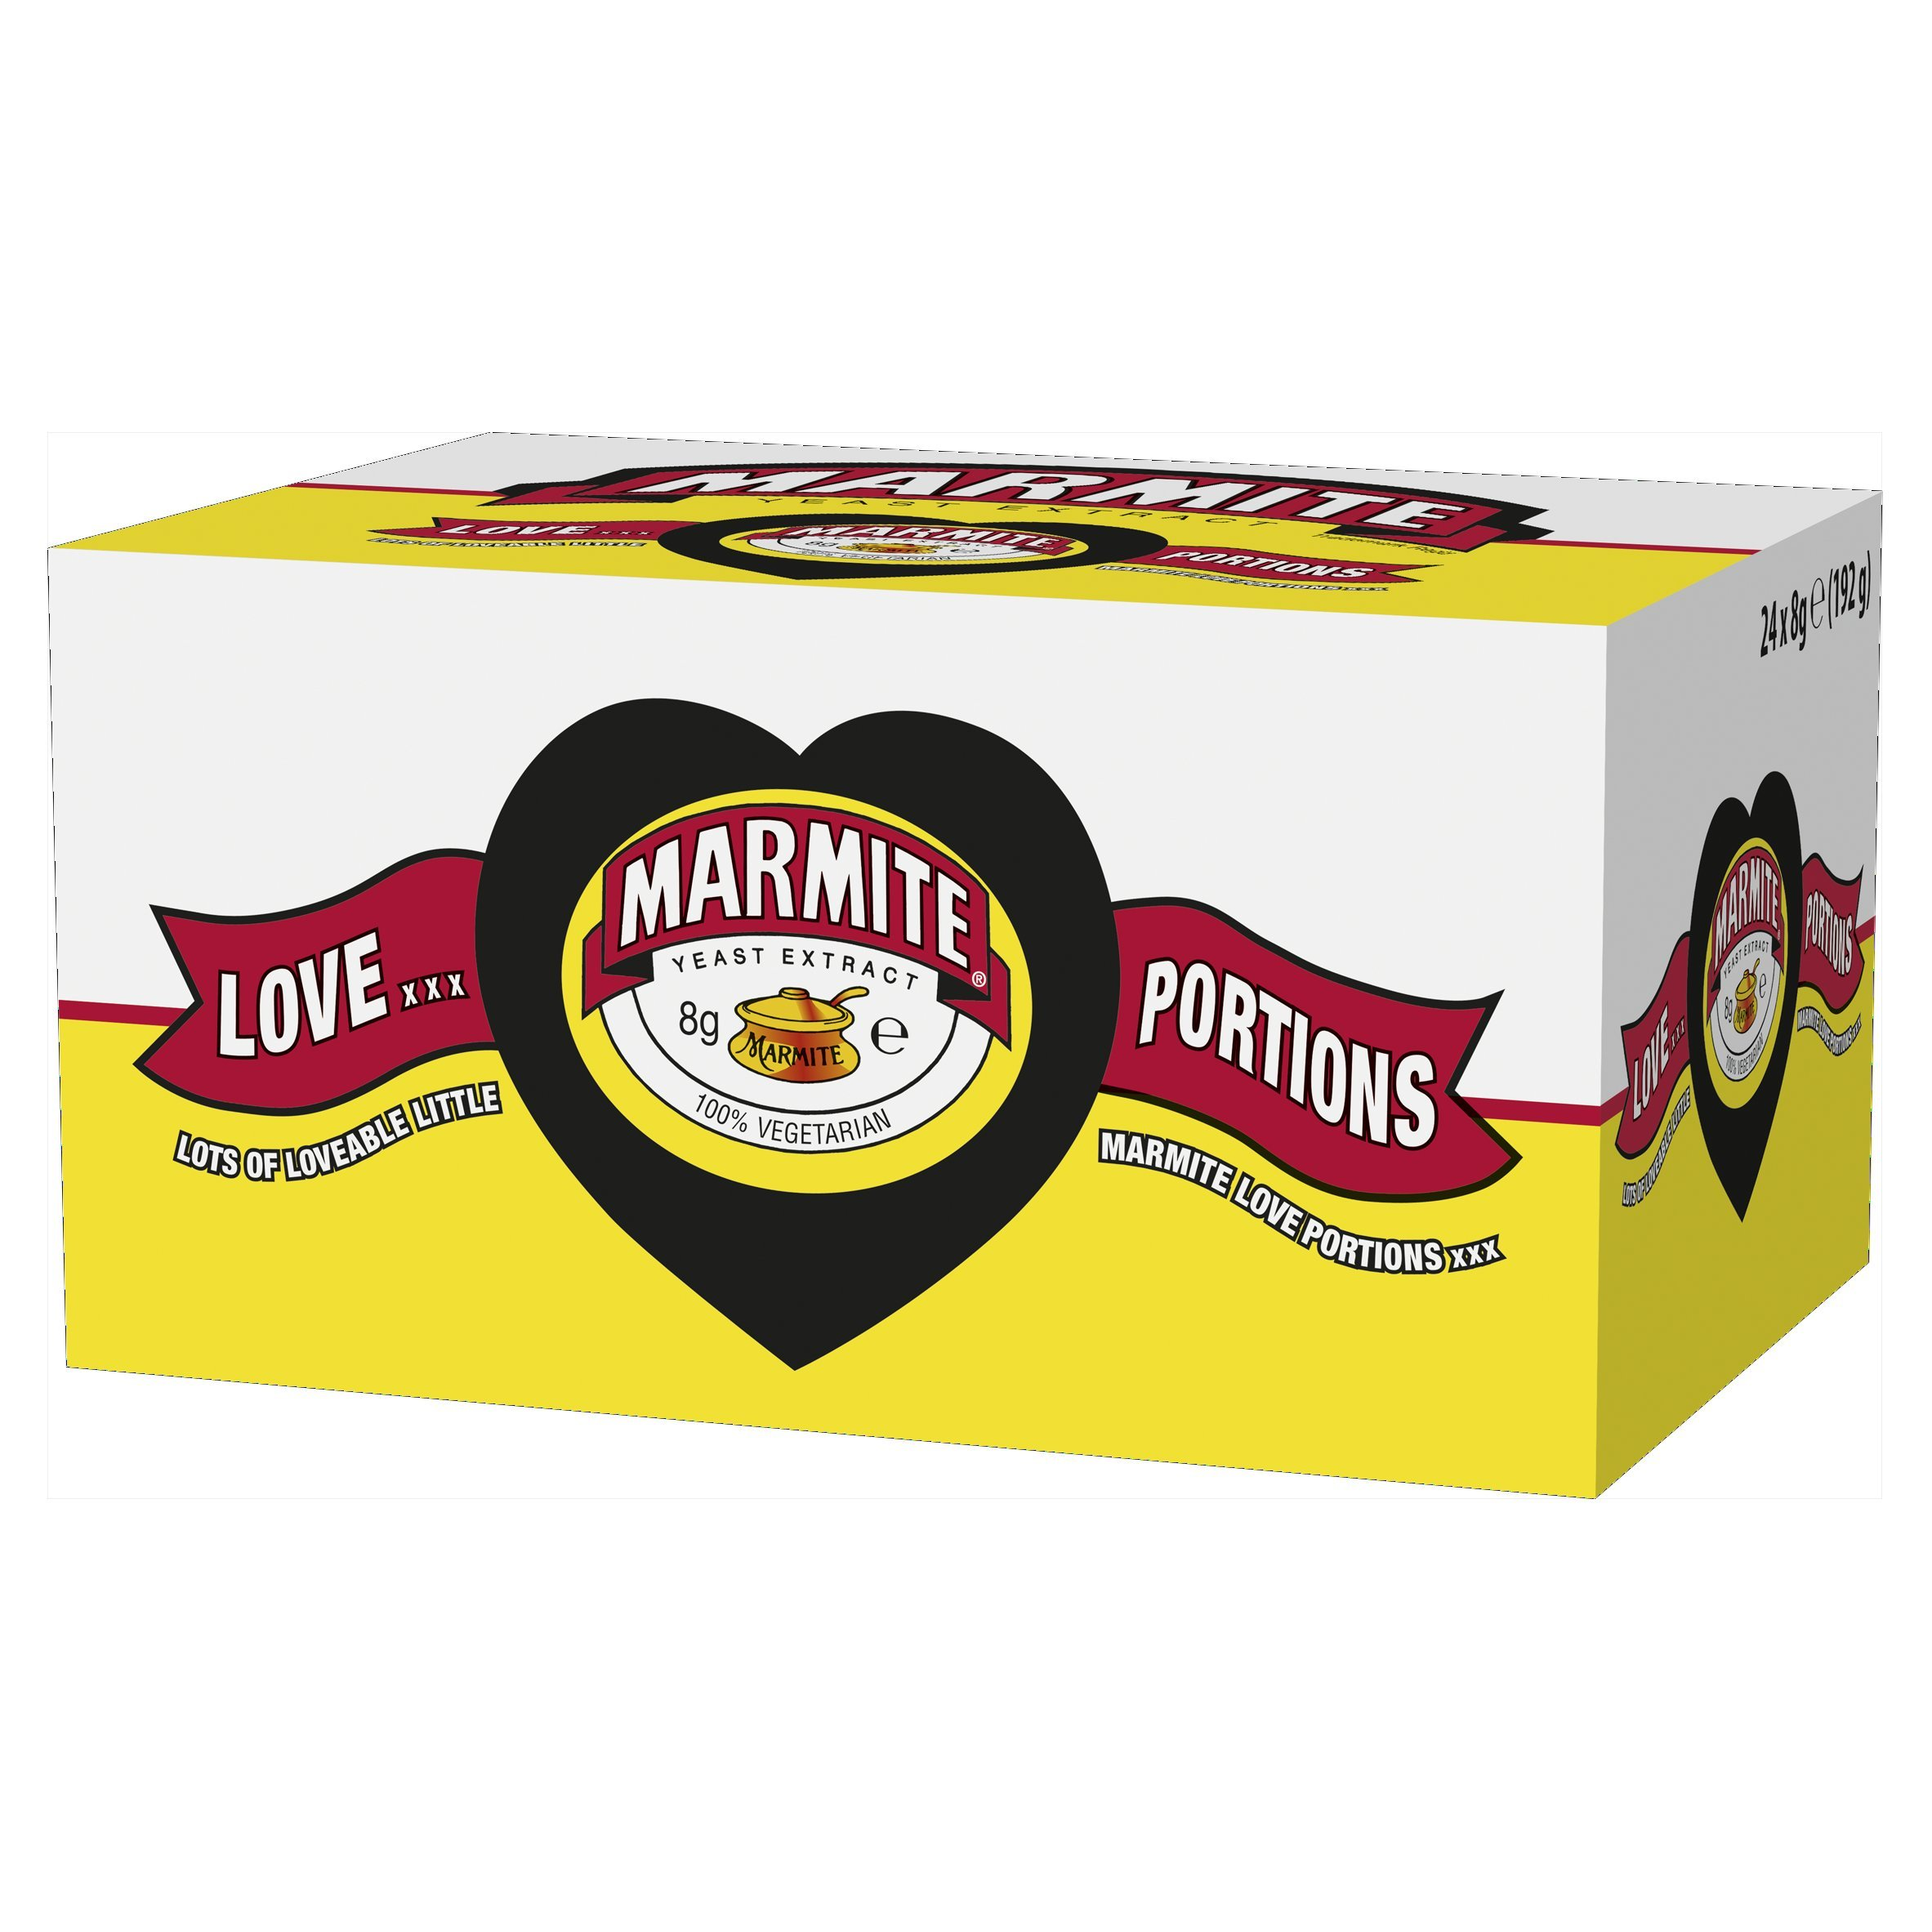 Marmite Yeast Extract Portions 24 x 8g 192g